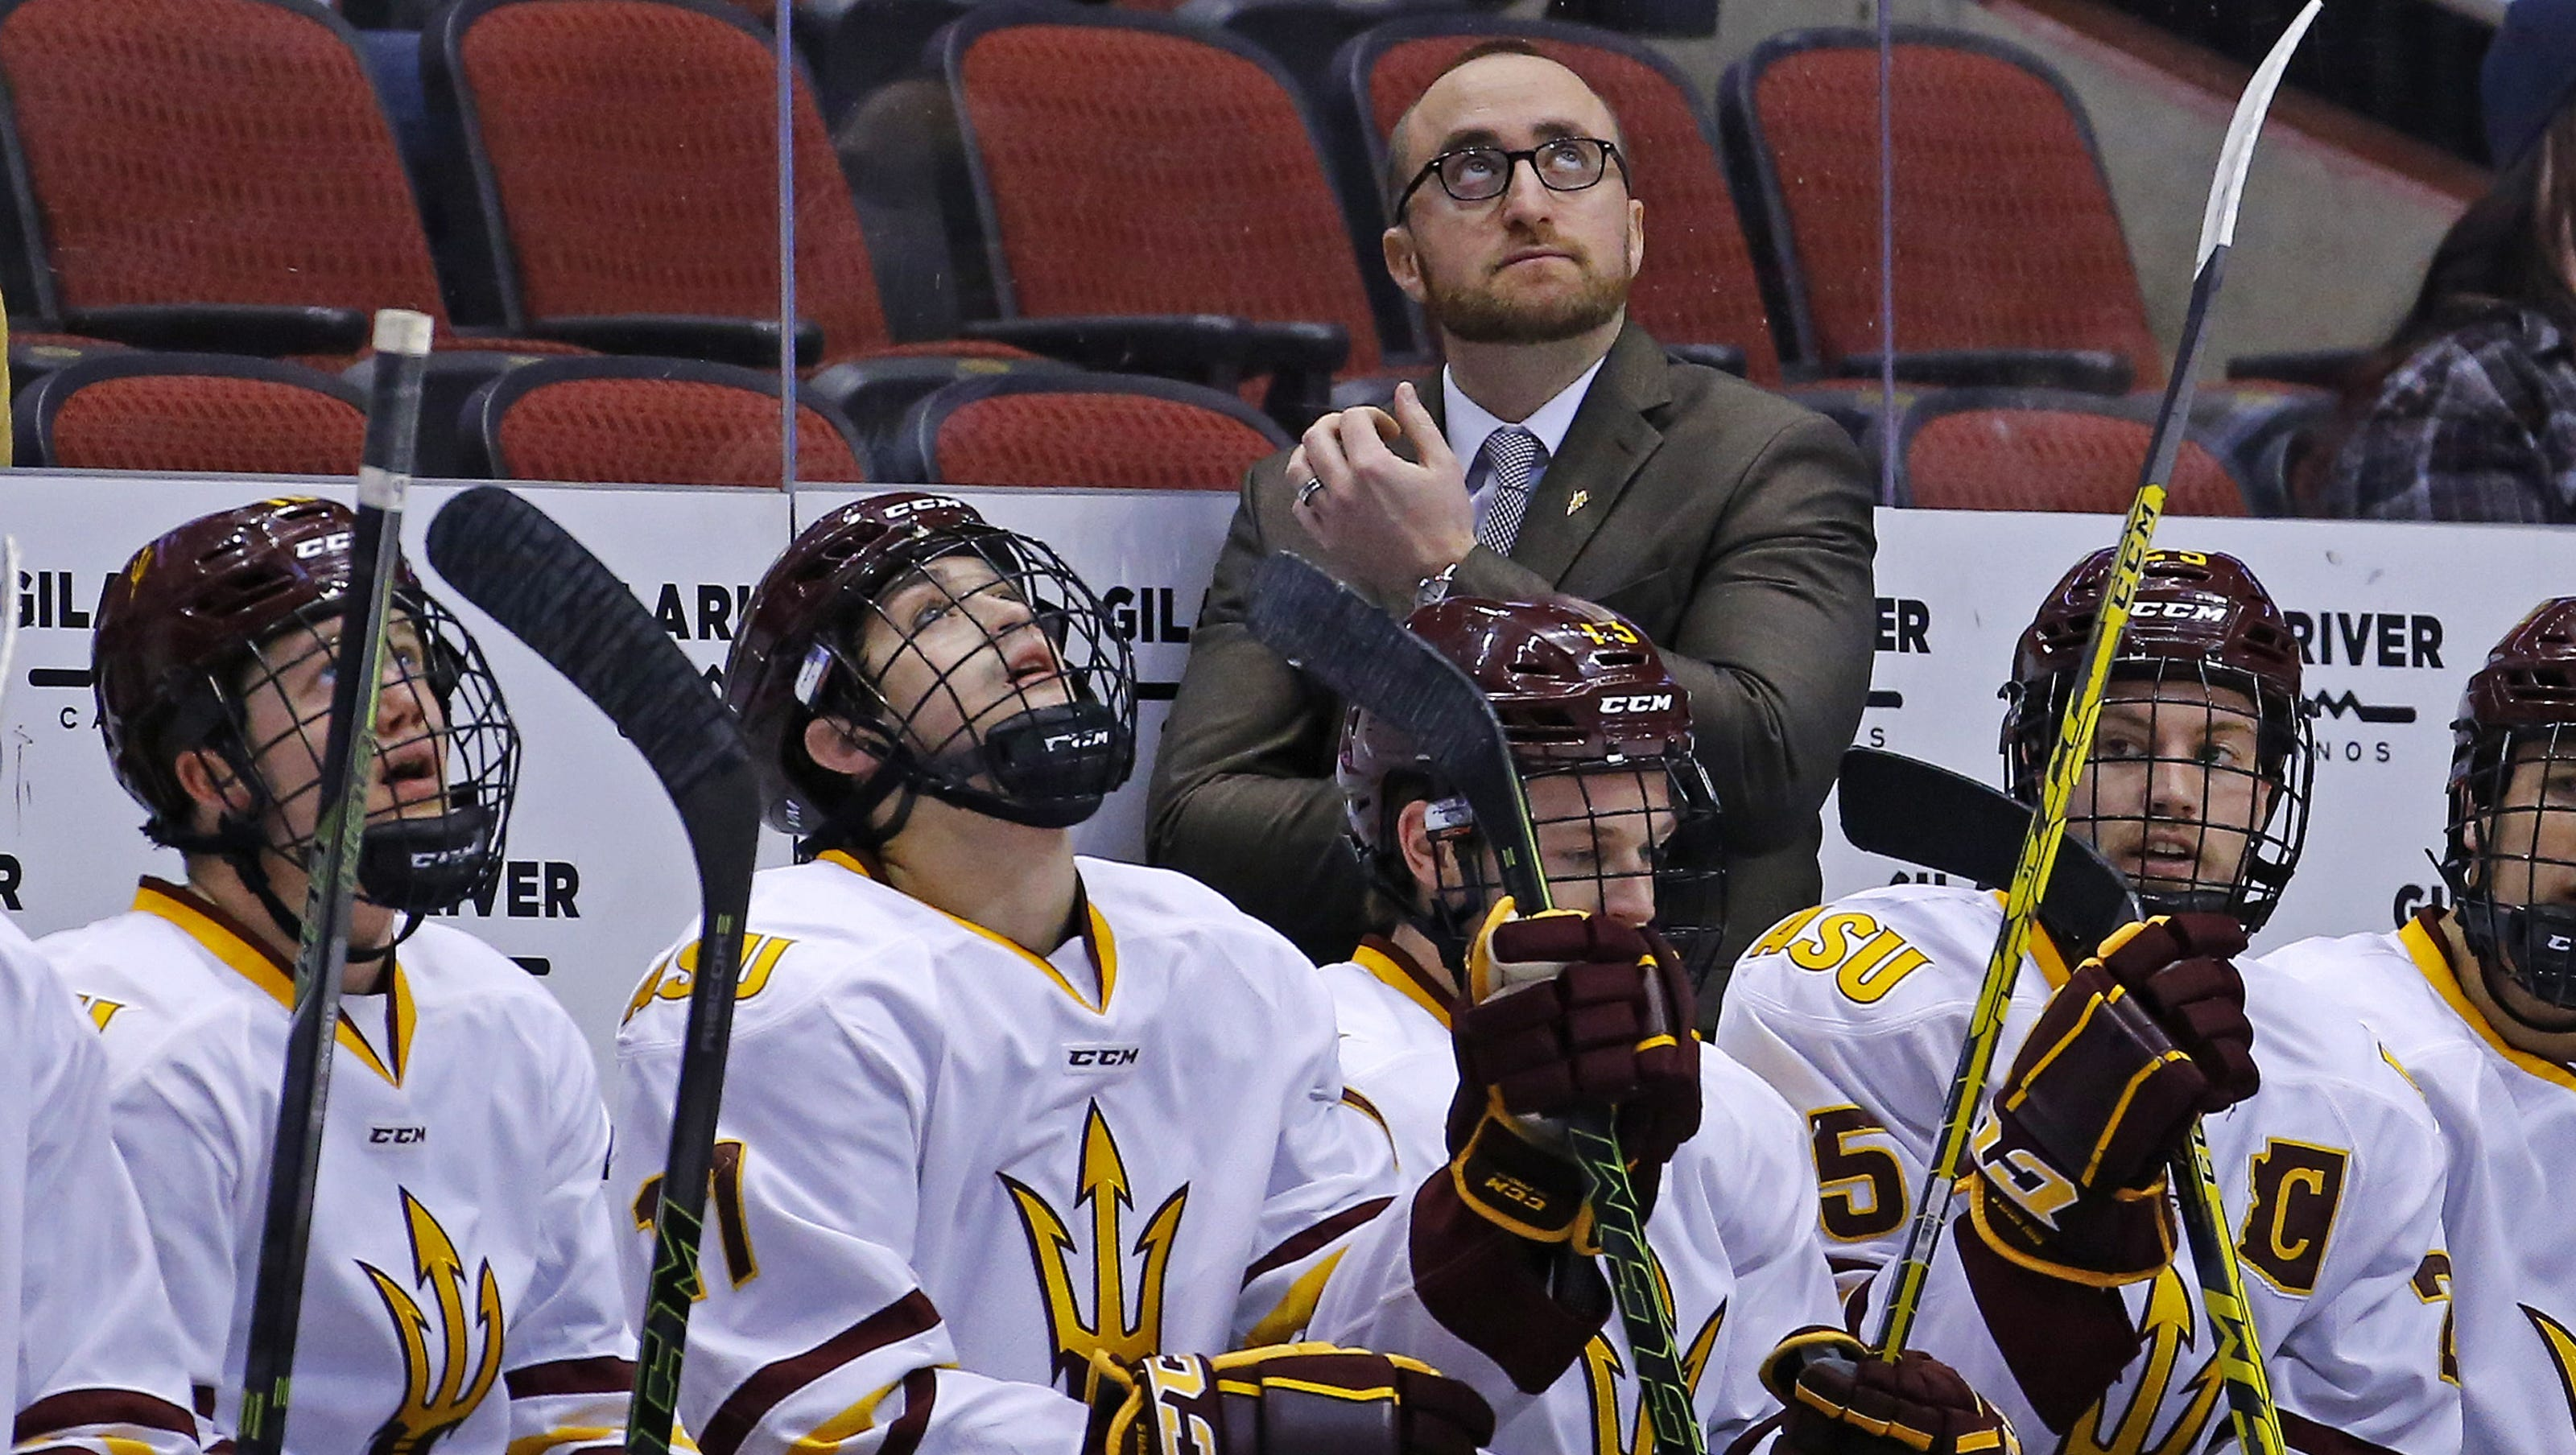 asu hockey has more talent, tougher schedule in year 2